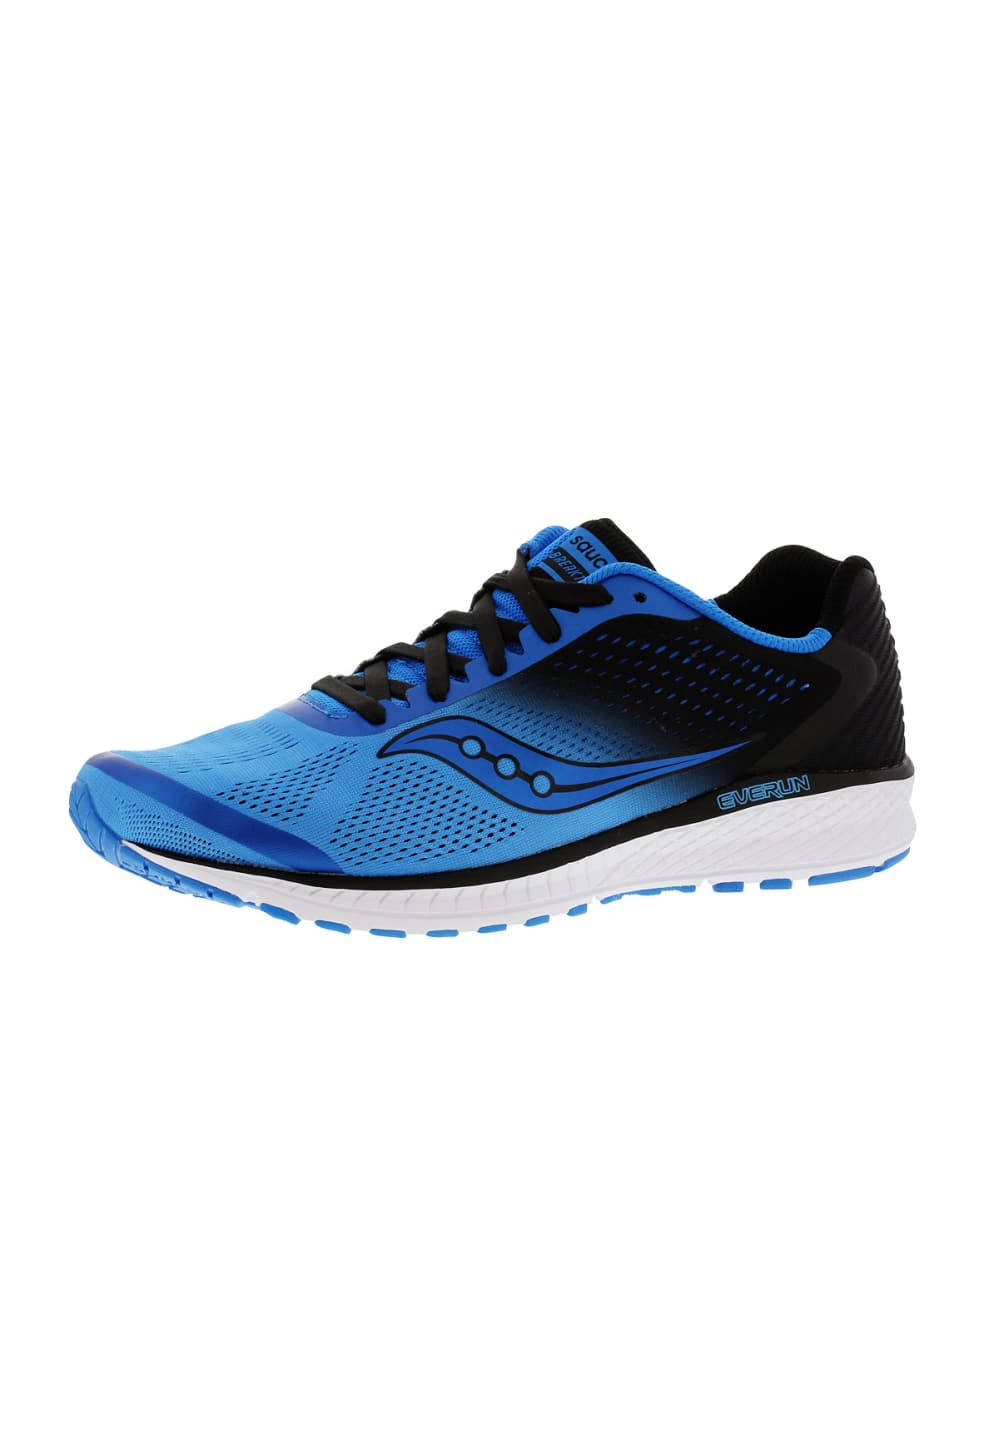 9b300580a9bb5 Saucony Breakthru 4 - Running shoes for Men - Black